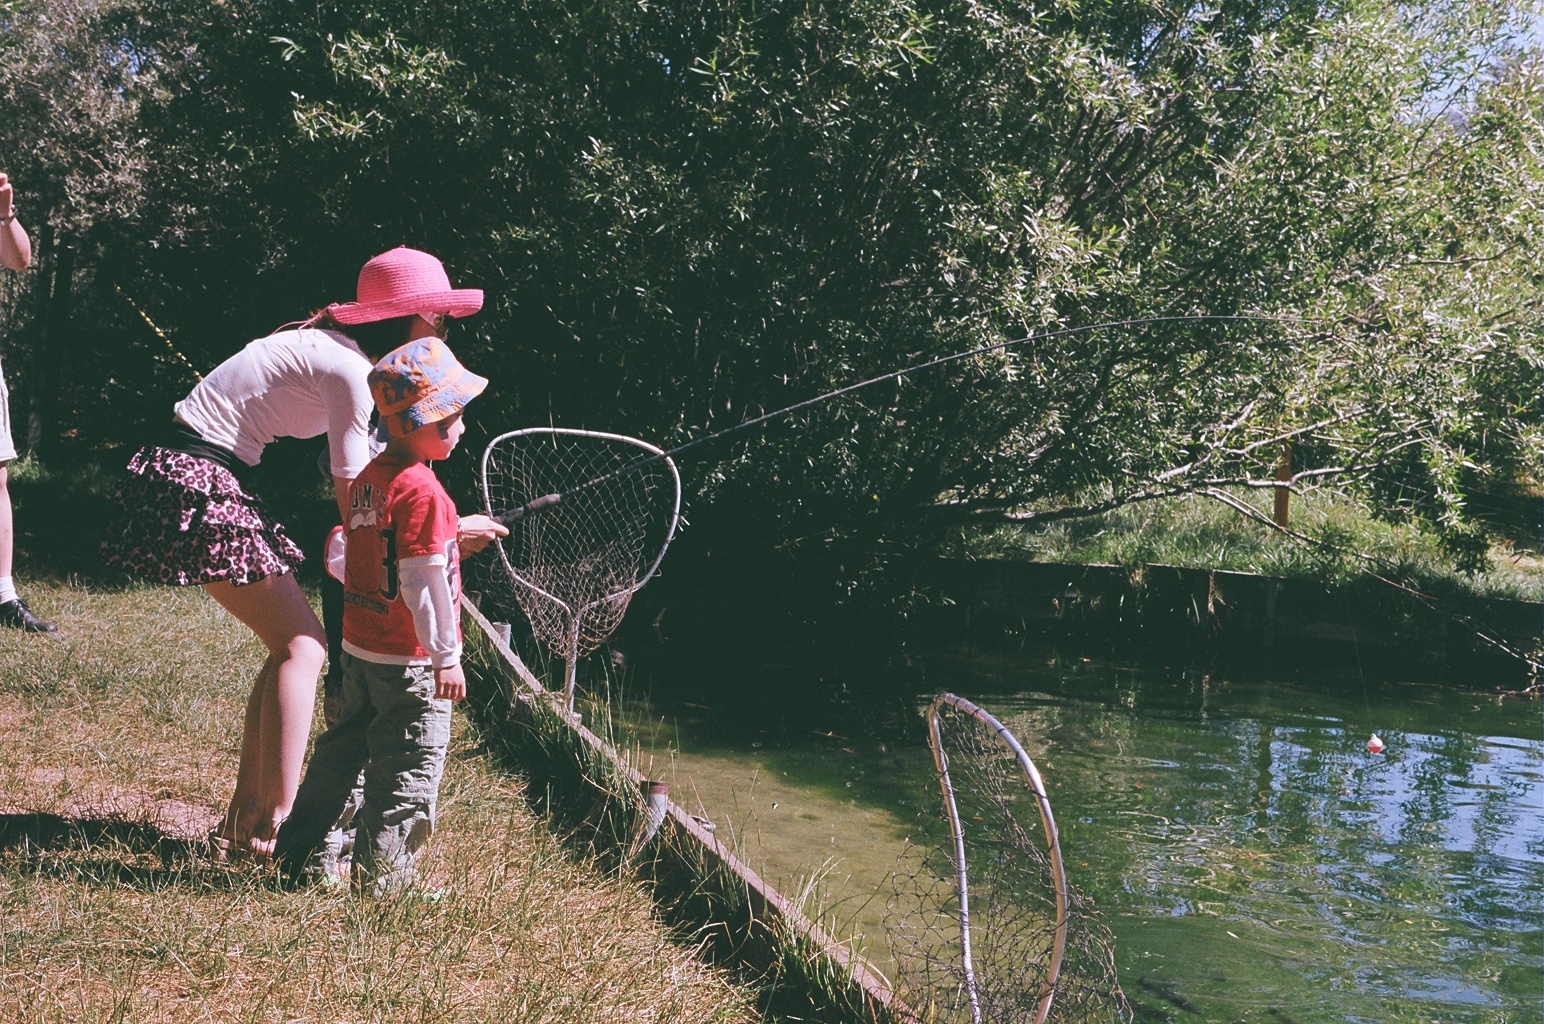 Tahoe trout farm come where you really hook em - Trout farming business family mountains ...